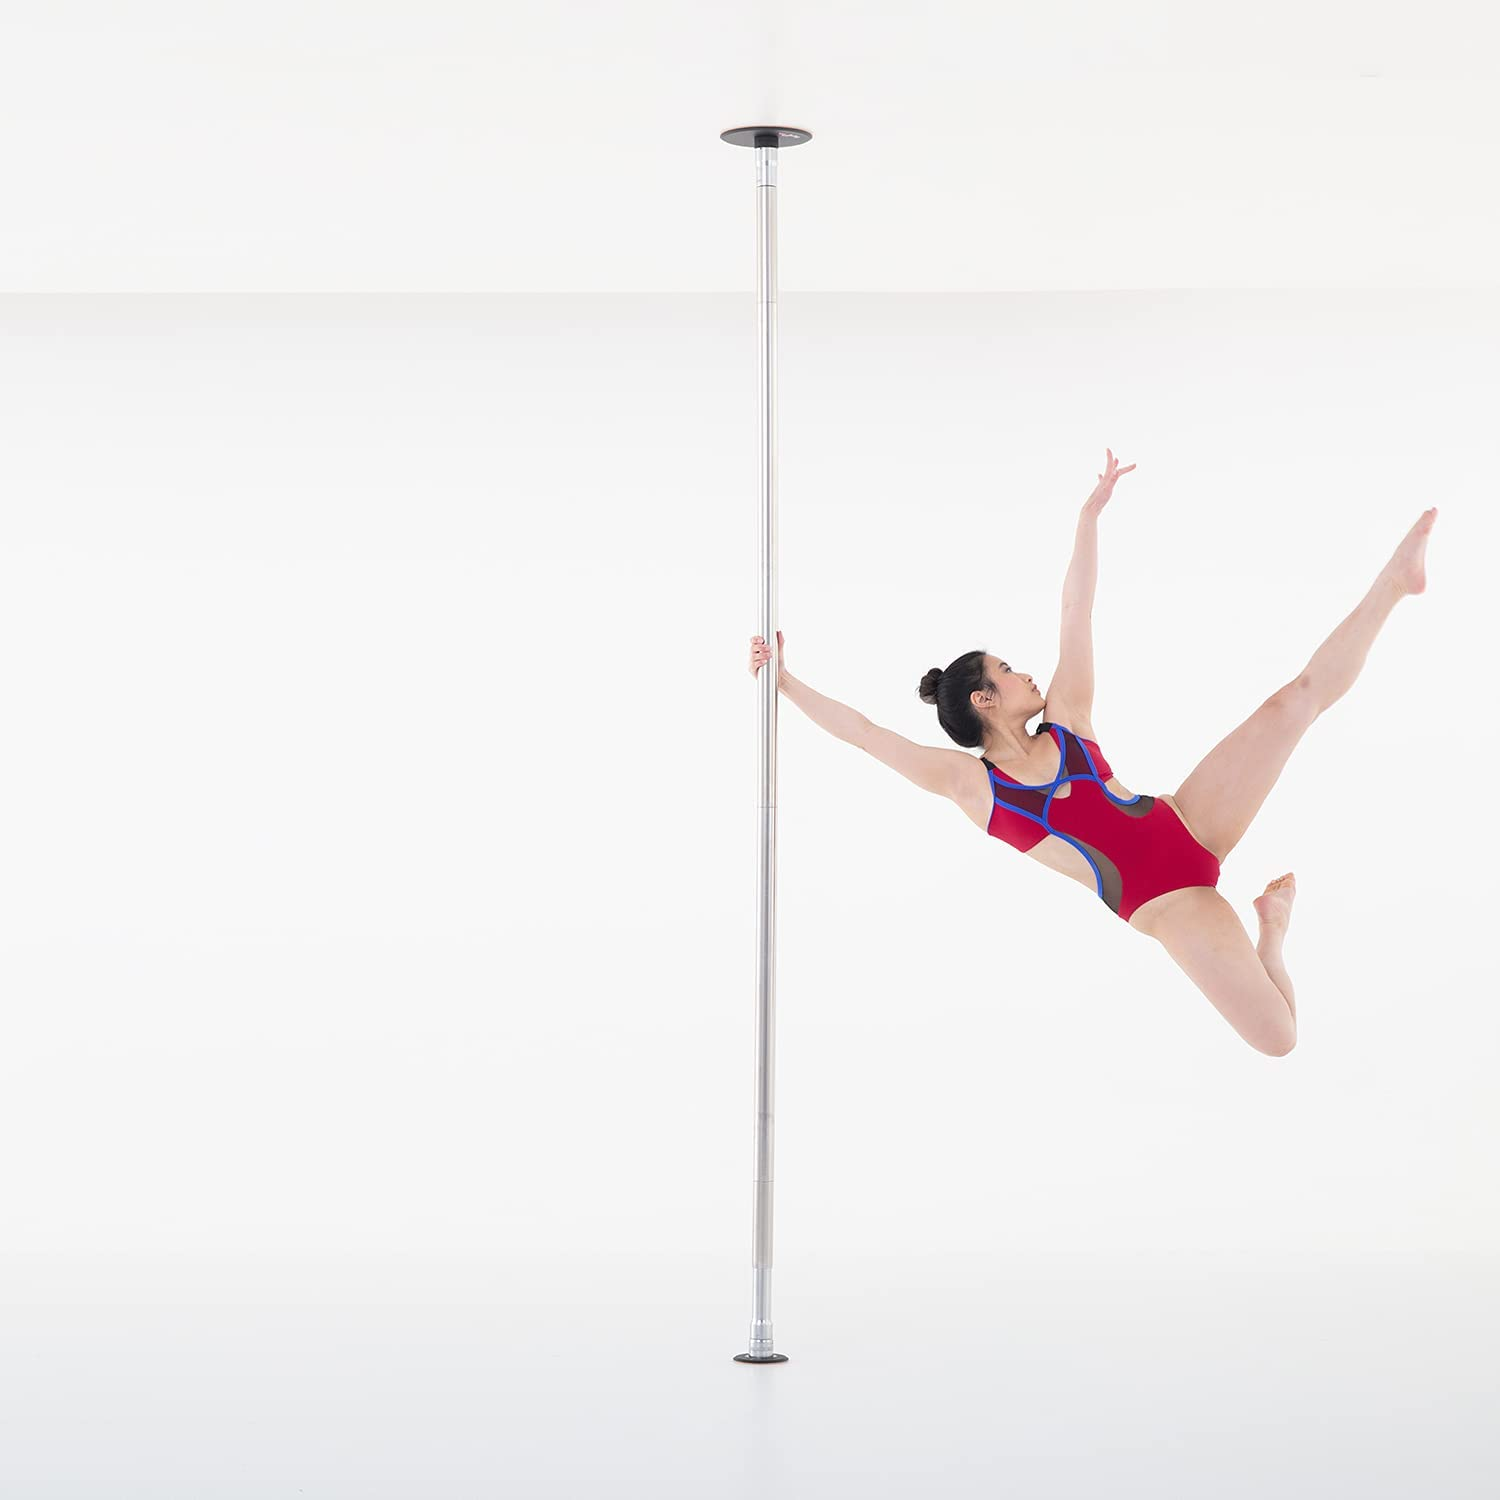 Clearance SALE! Limited time! LUPIT Super-cheap POLE Professional Stripper Pole Home for G2 Chrome Classic